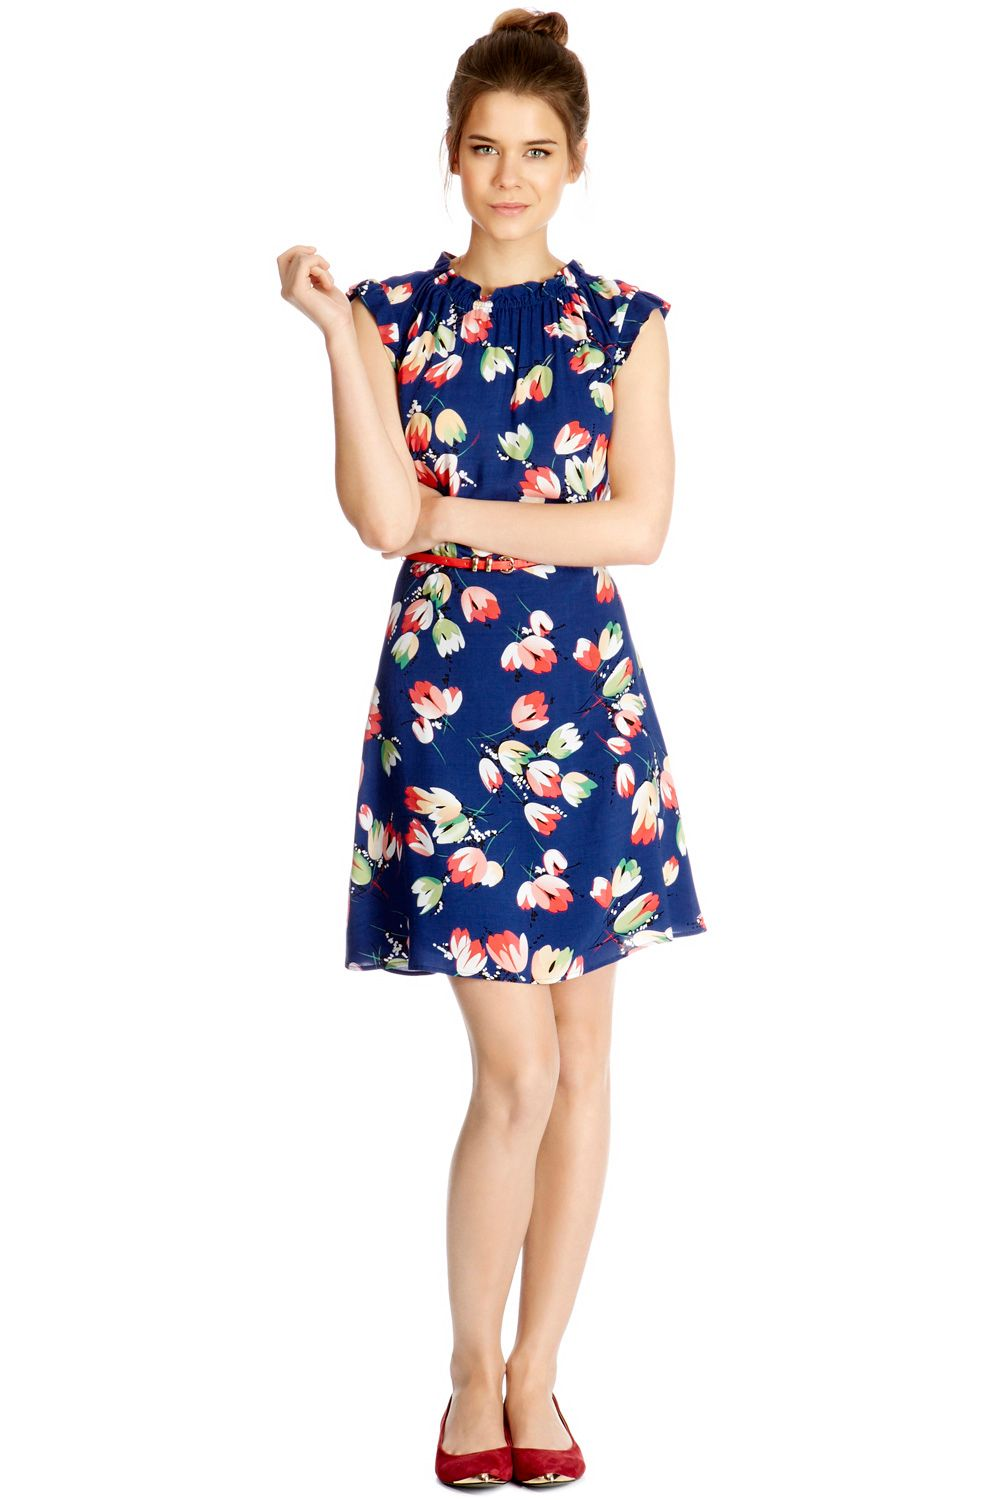 Deco tulip dress